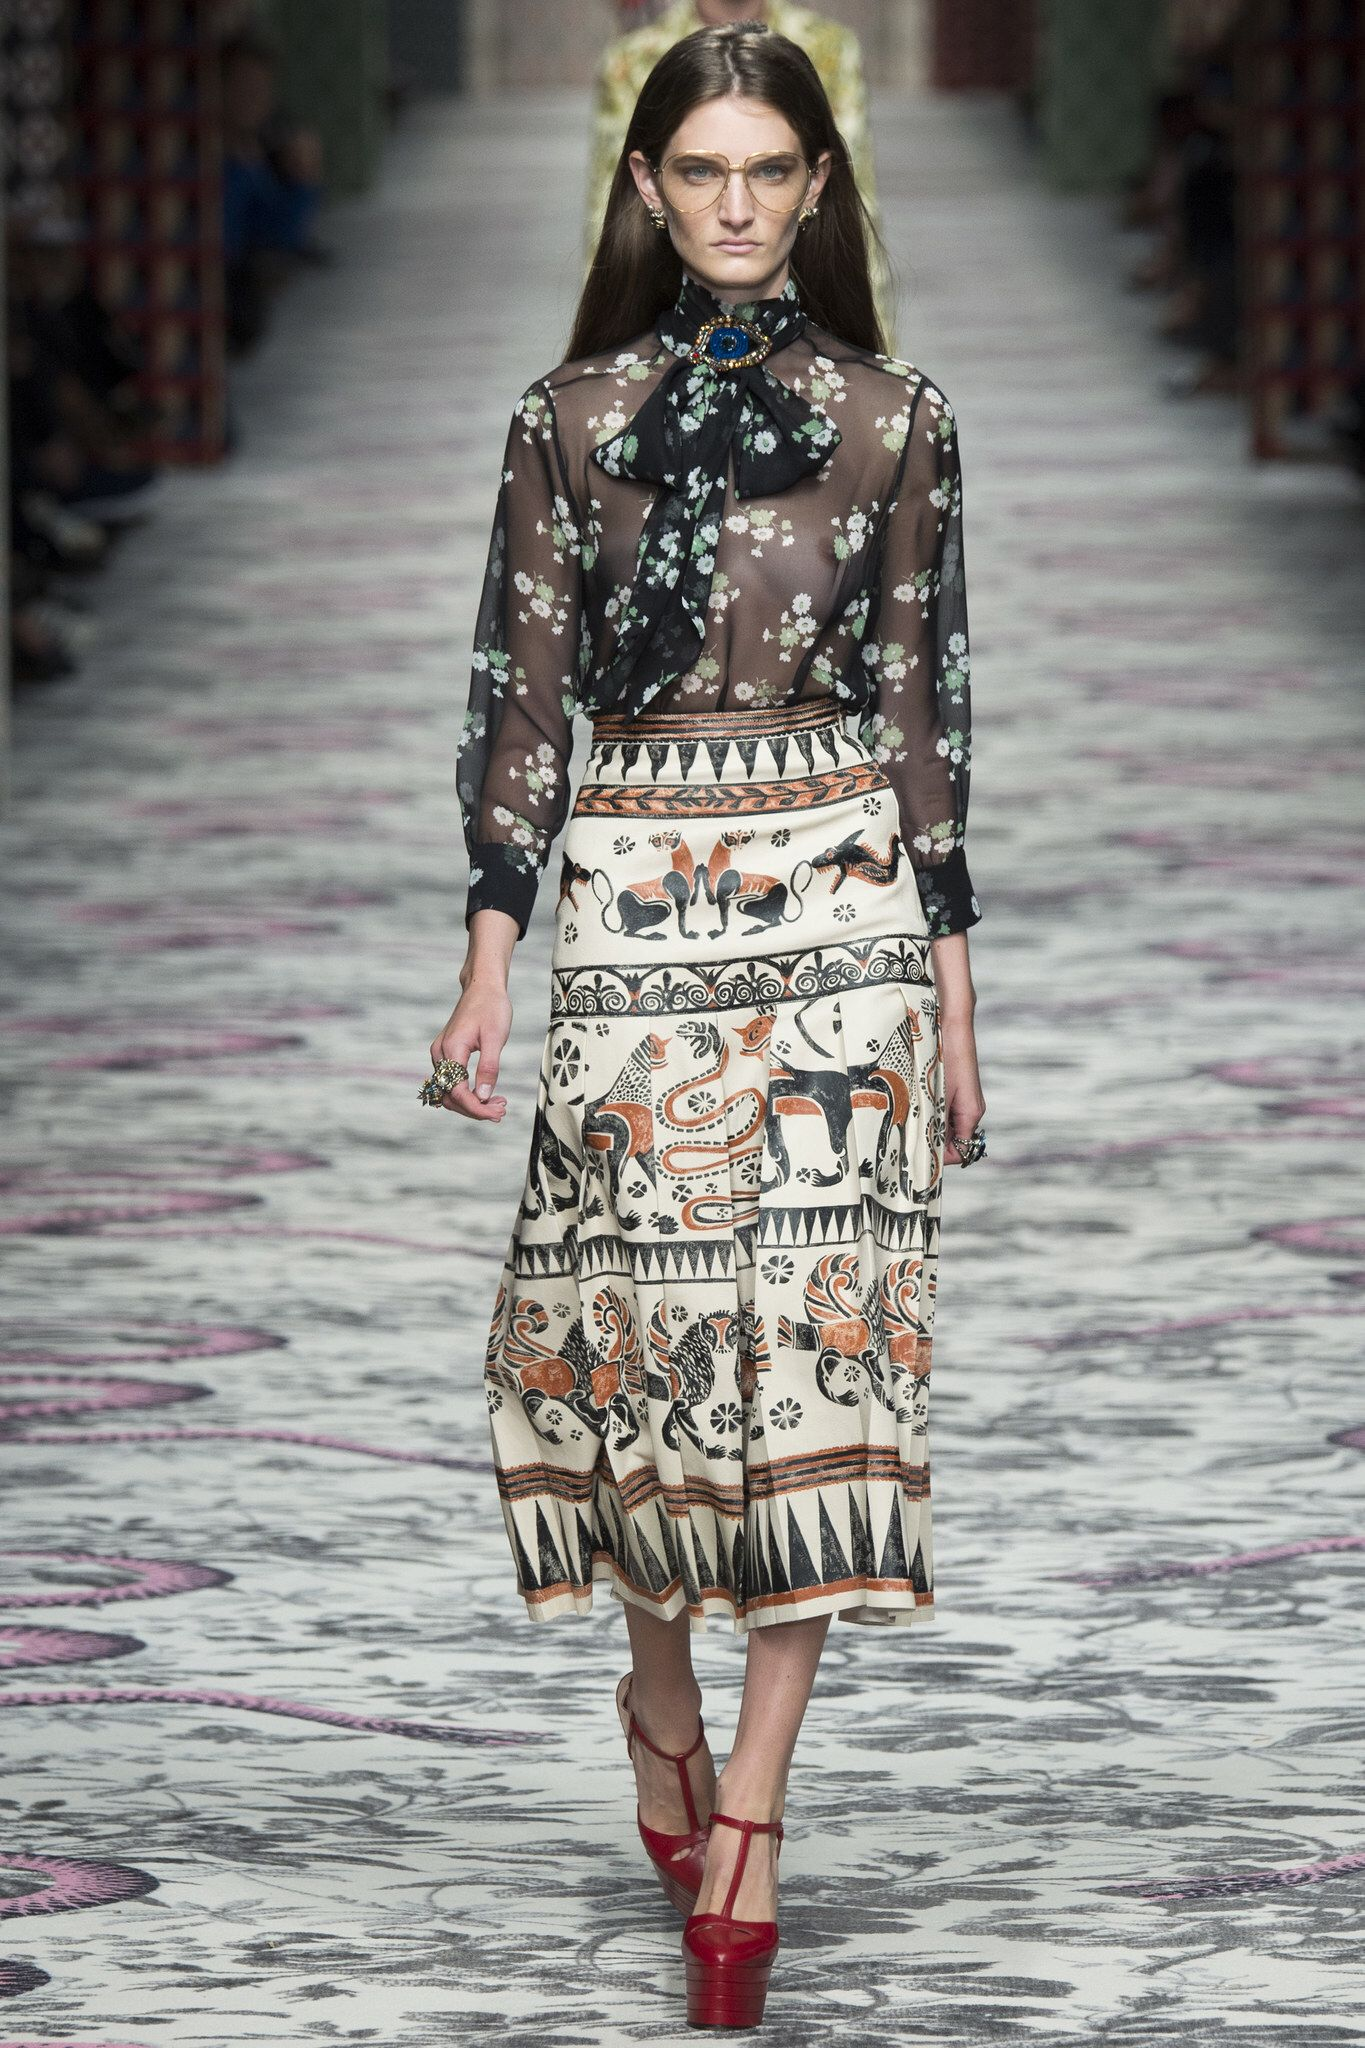 Spring-Summer 2015: beauty images from Gucci, Fendi, Prada shows